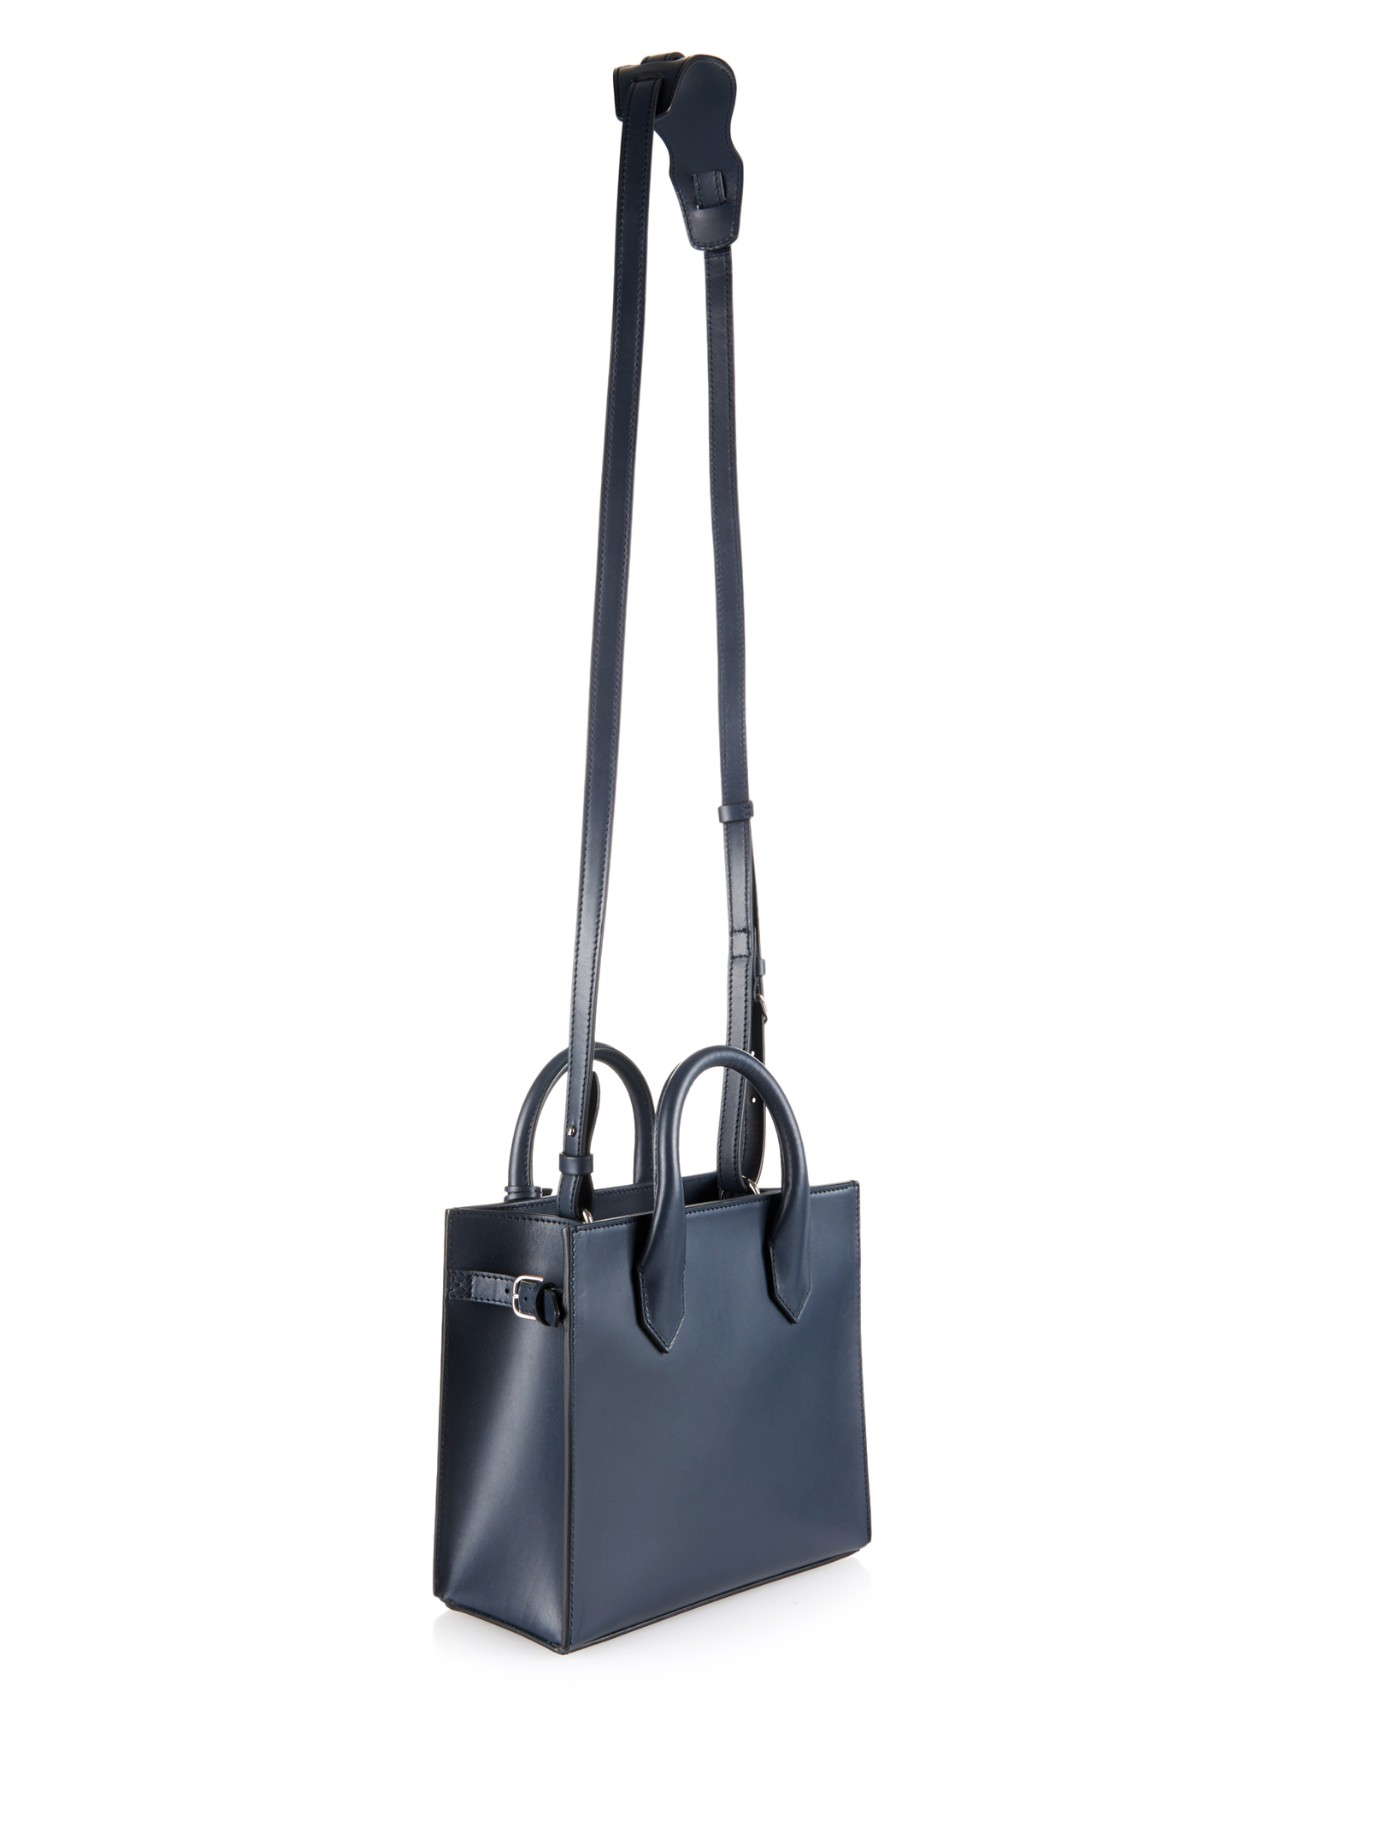 Balenciaga Leather Nude Mini All Afternoon Cross-Body Bag in Navy (Blue)